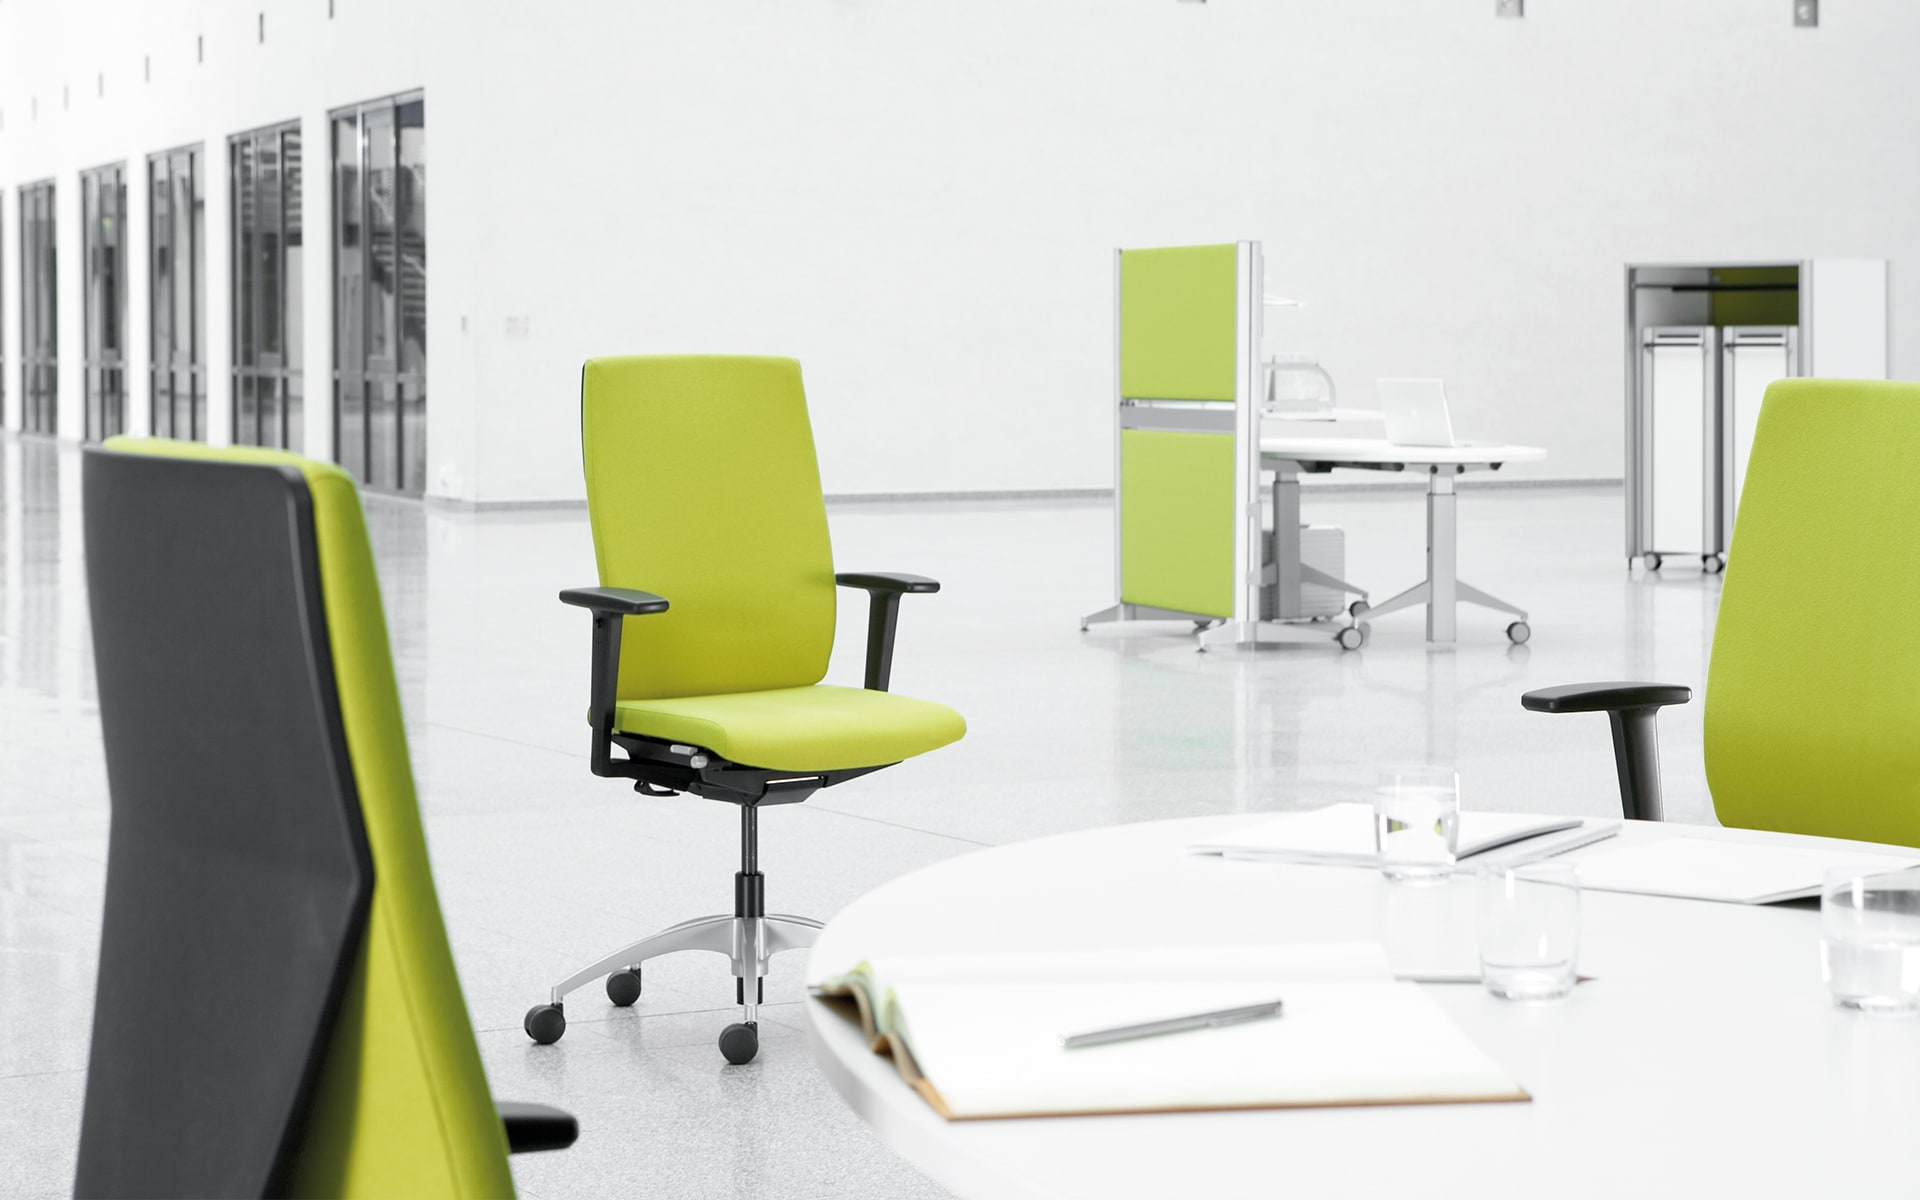 K+N Signeta swivel chair by ITO Design with bright green upholstery in minimalist workspace